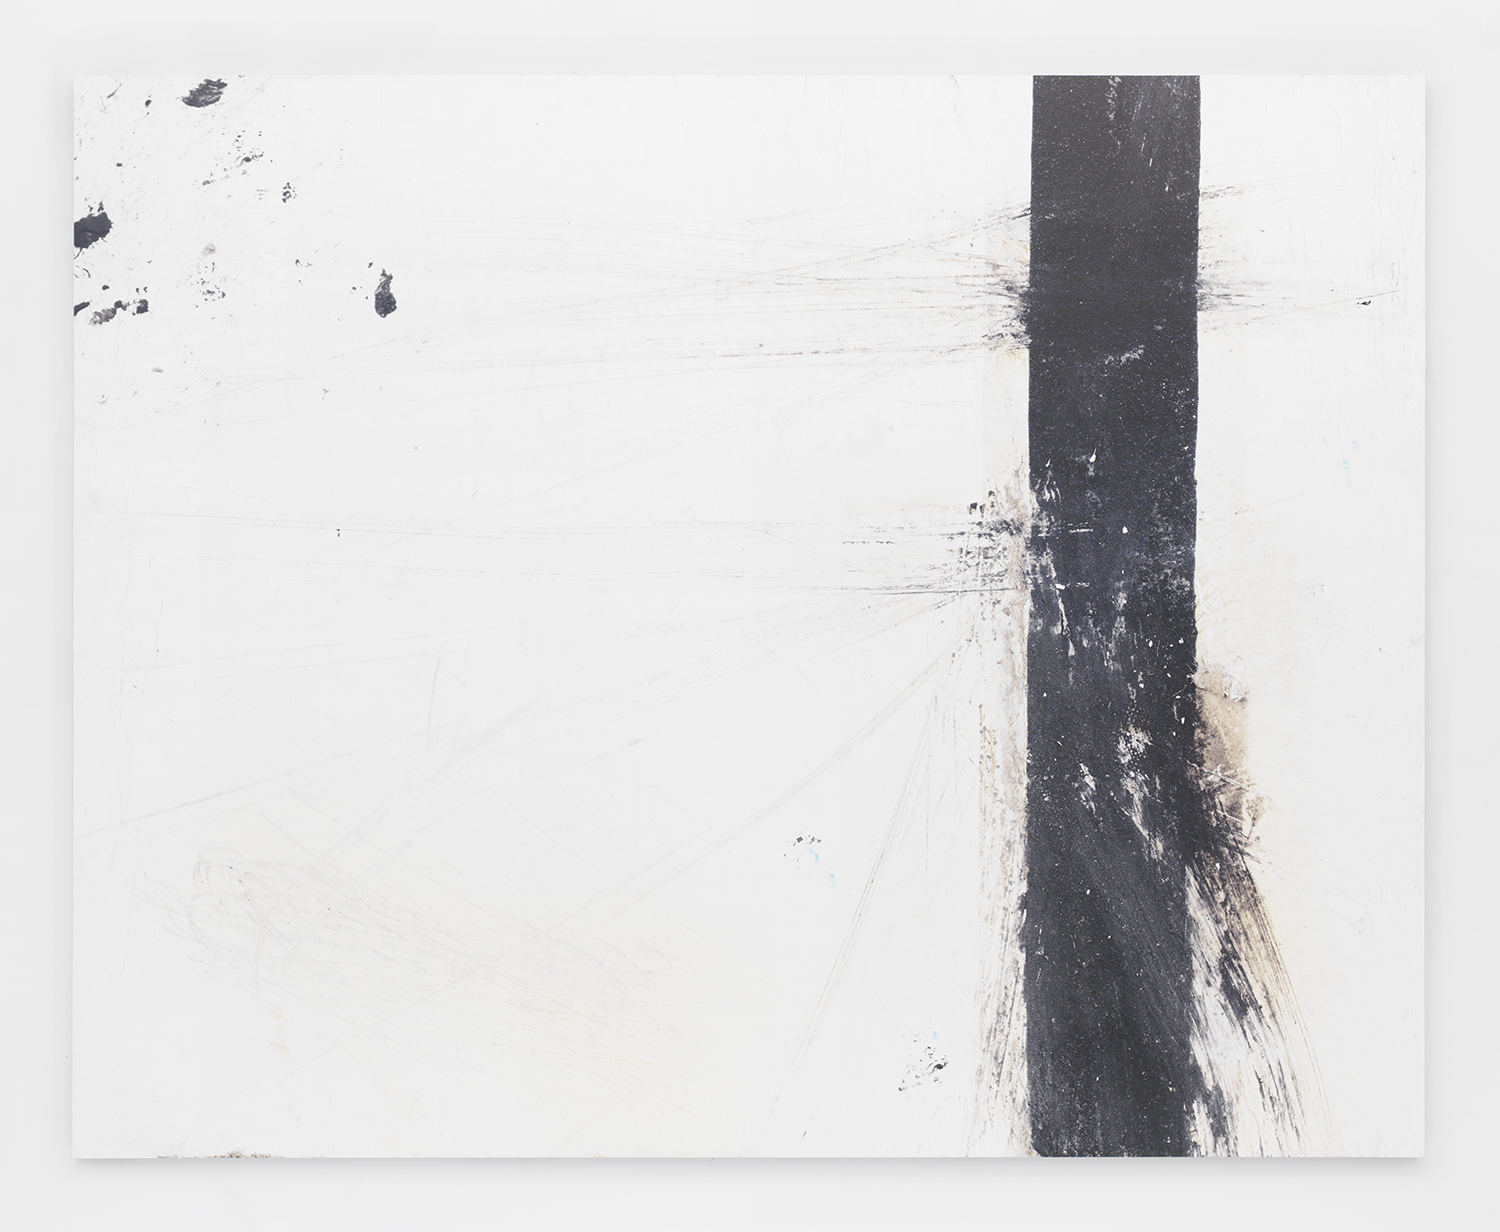 Alex Perwiler  Blinded by the Light , 2014 UV curable ink, paint on aluminium panel 72 x 90 inches